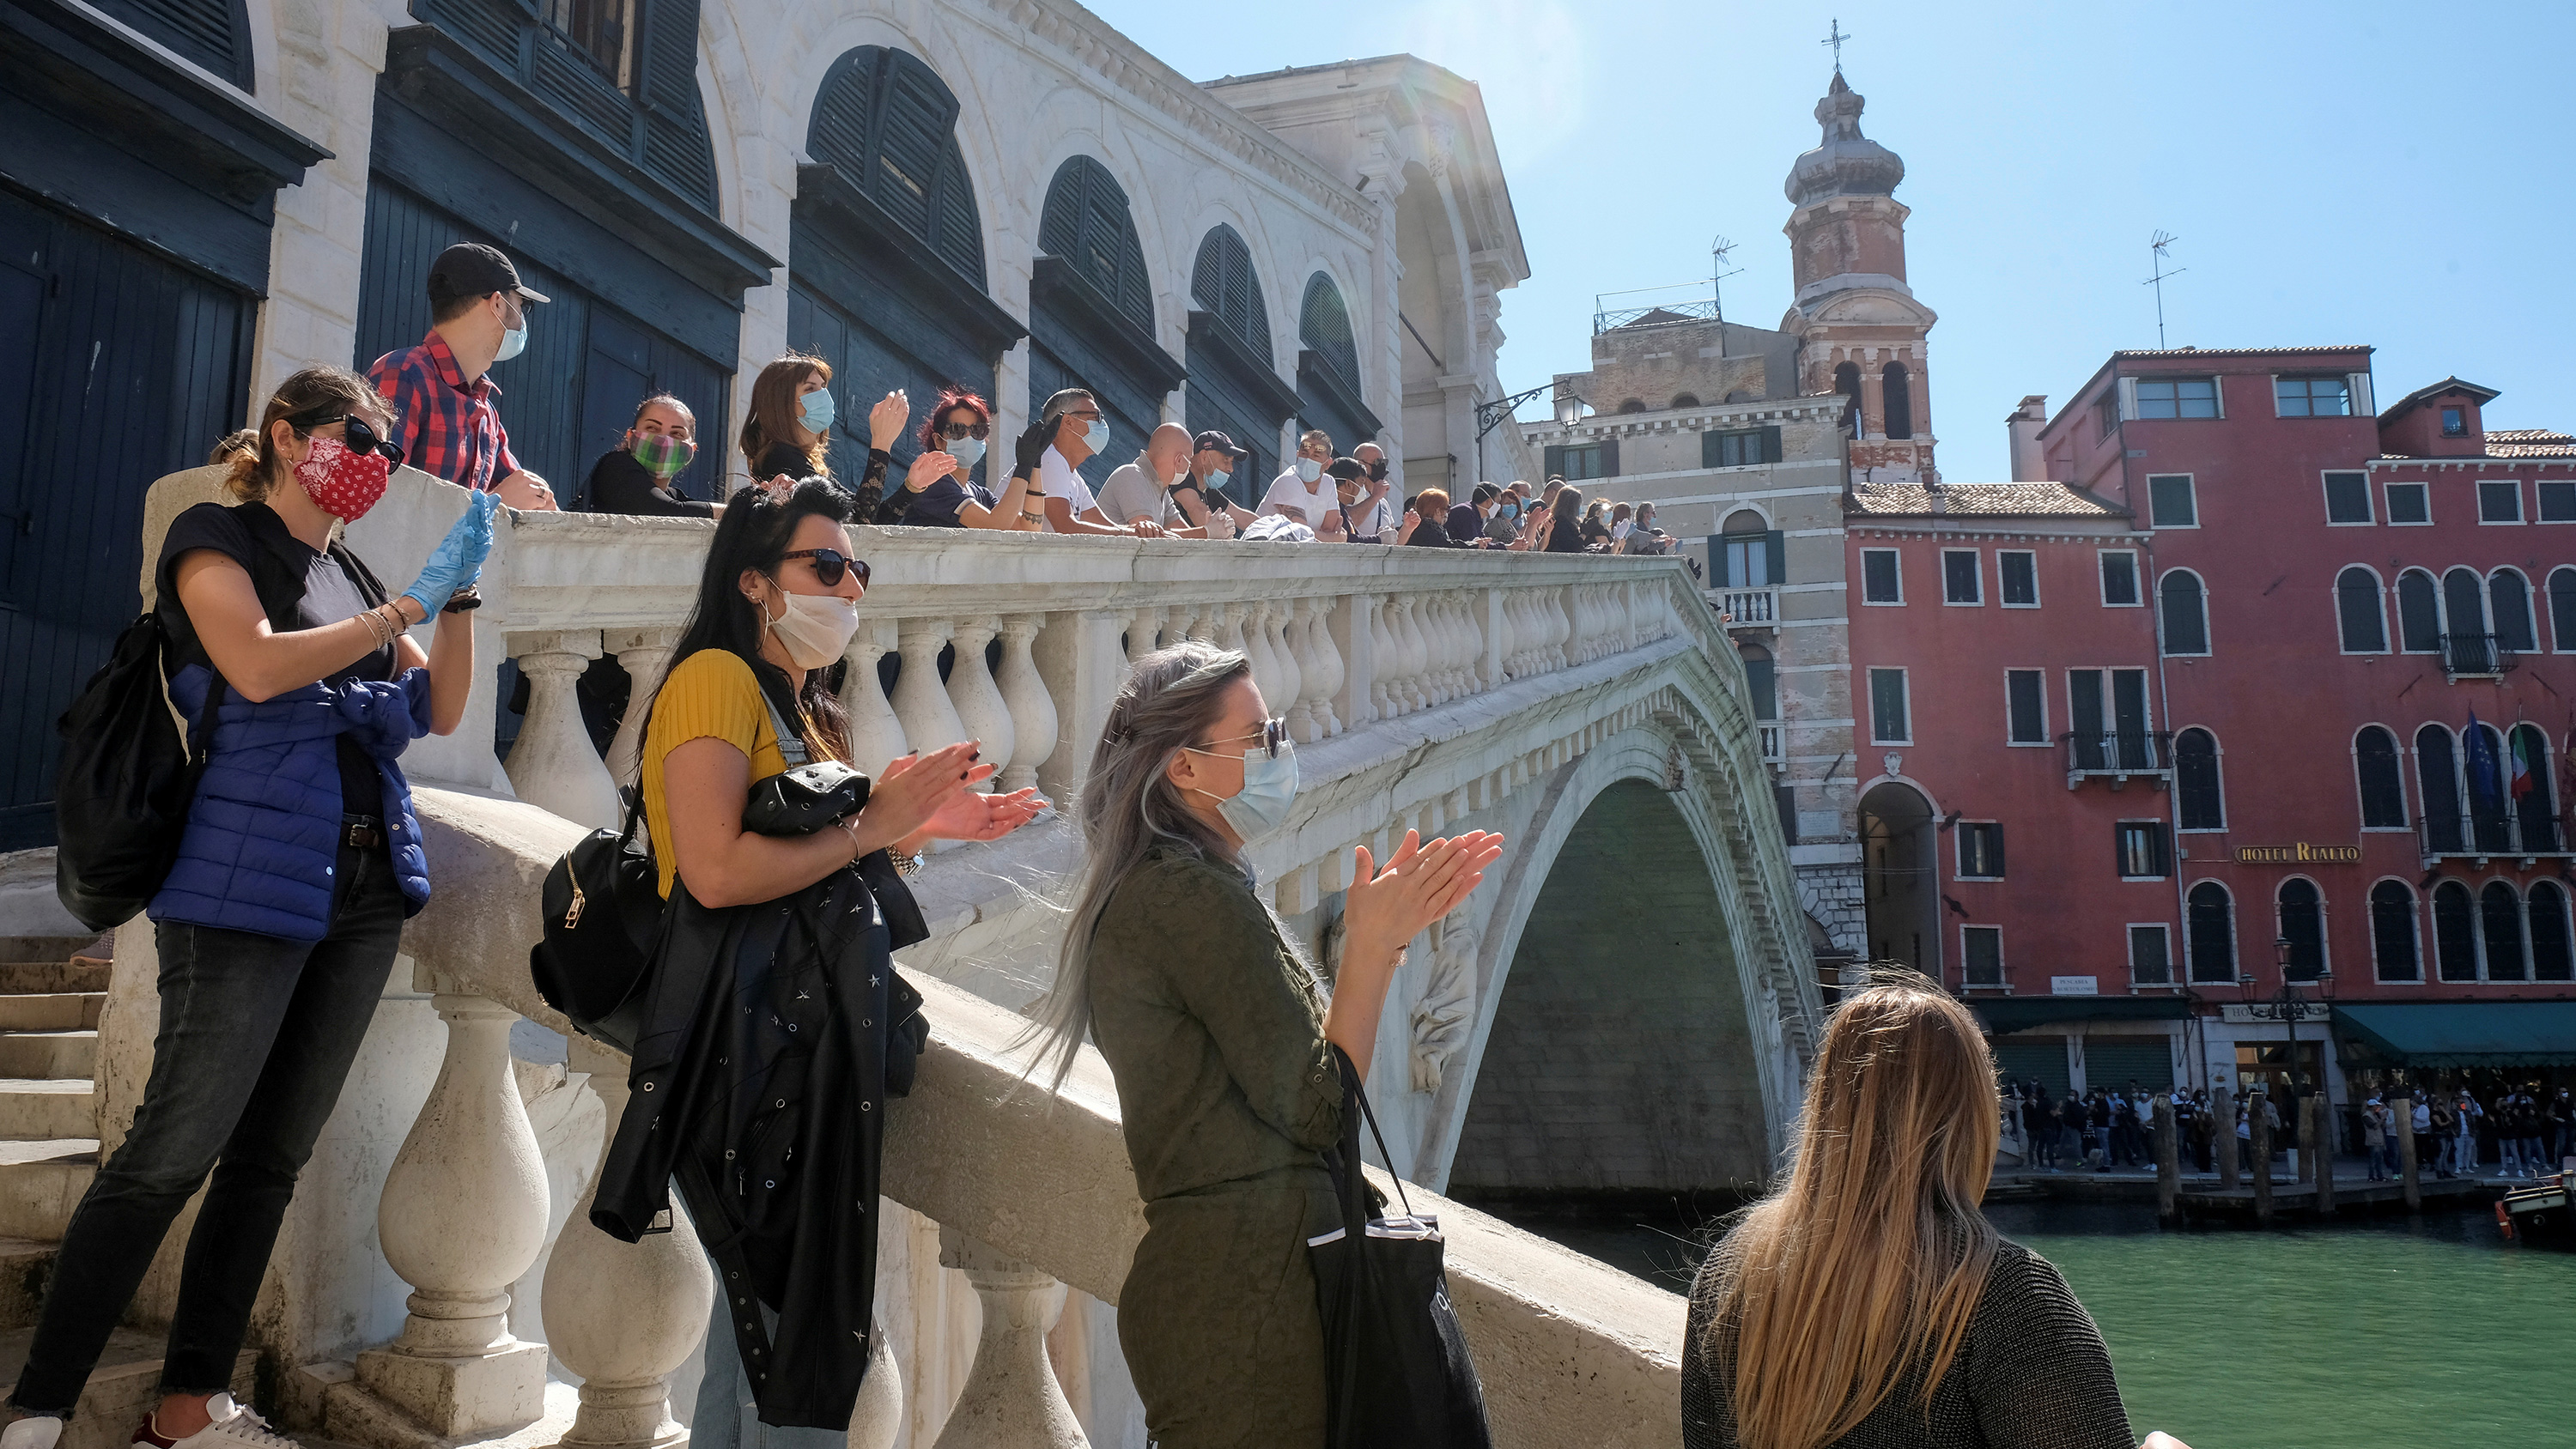 The photo shows a line of people social distancing standing on a picturesque bridge on a beautiful sunny day.